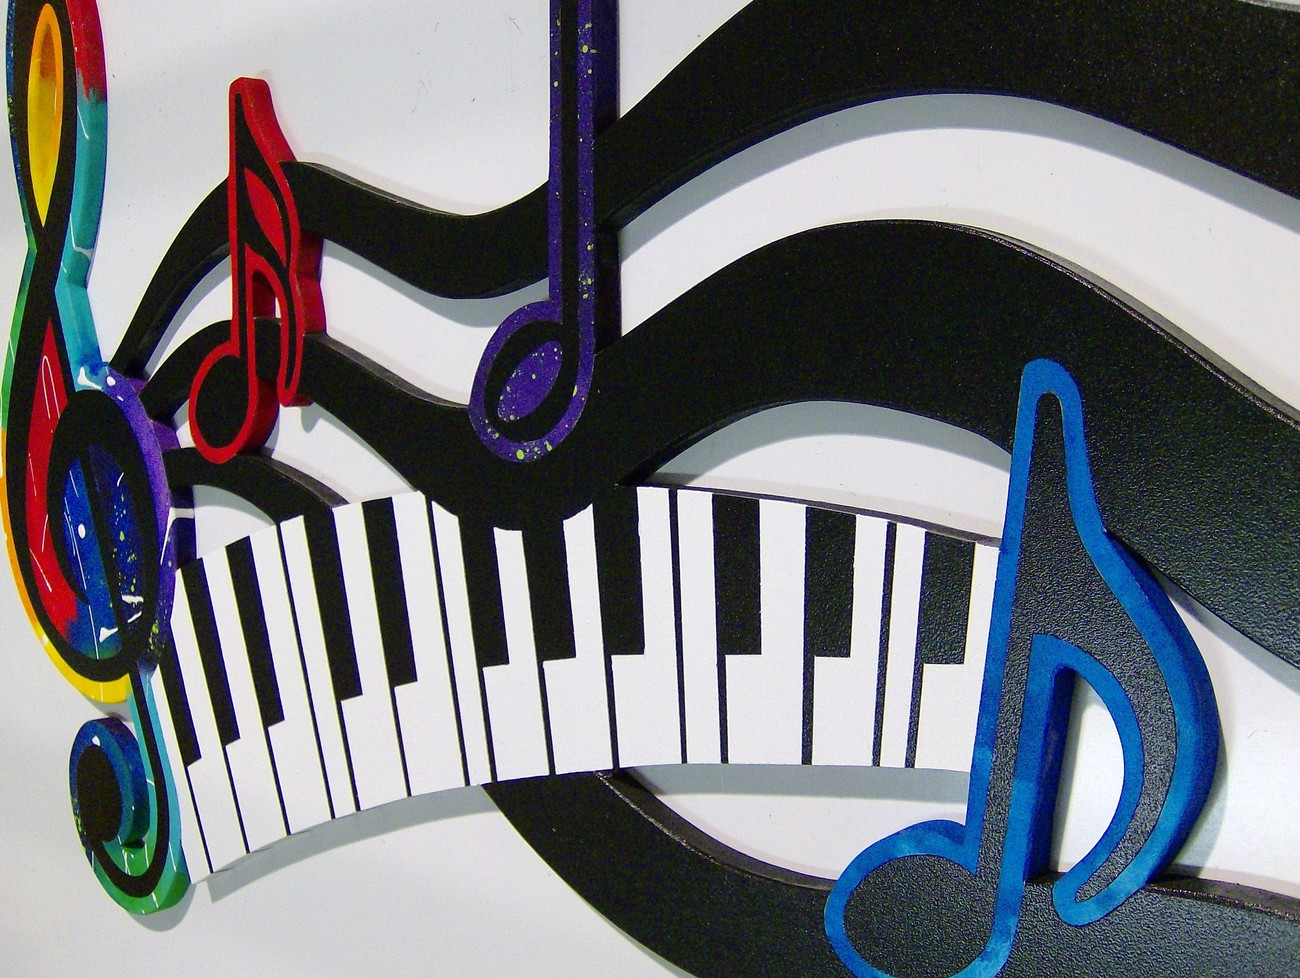 Image Gallery Of Colorful Piano Images